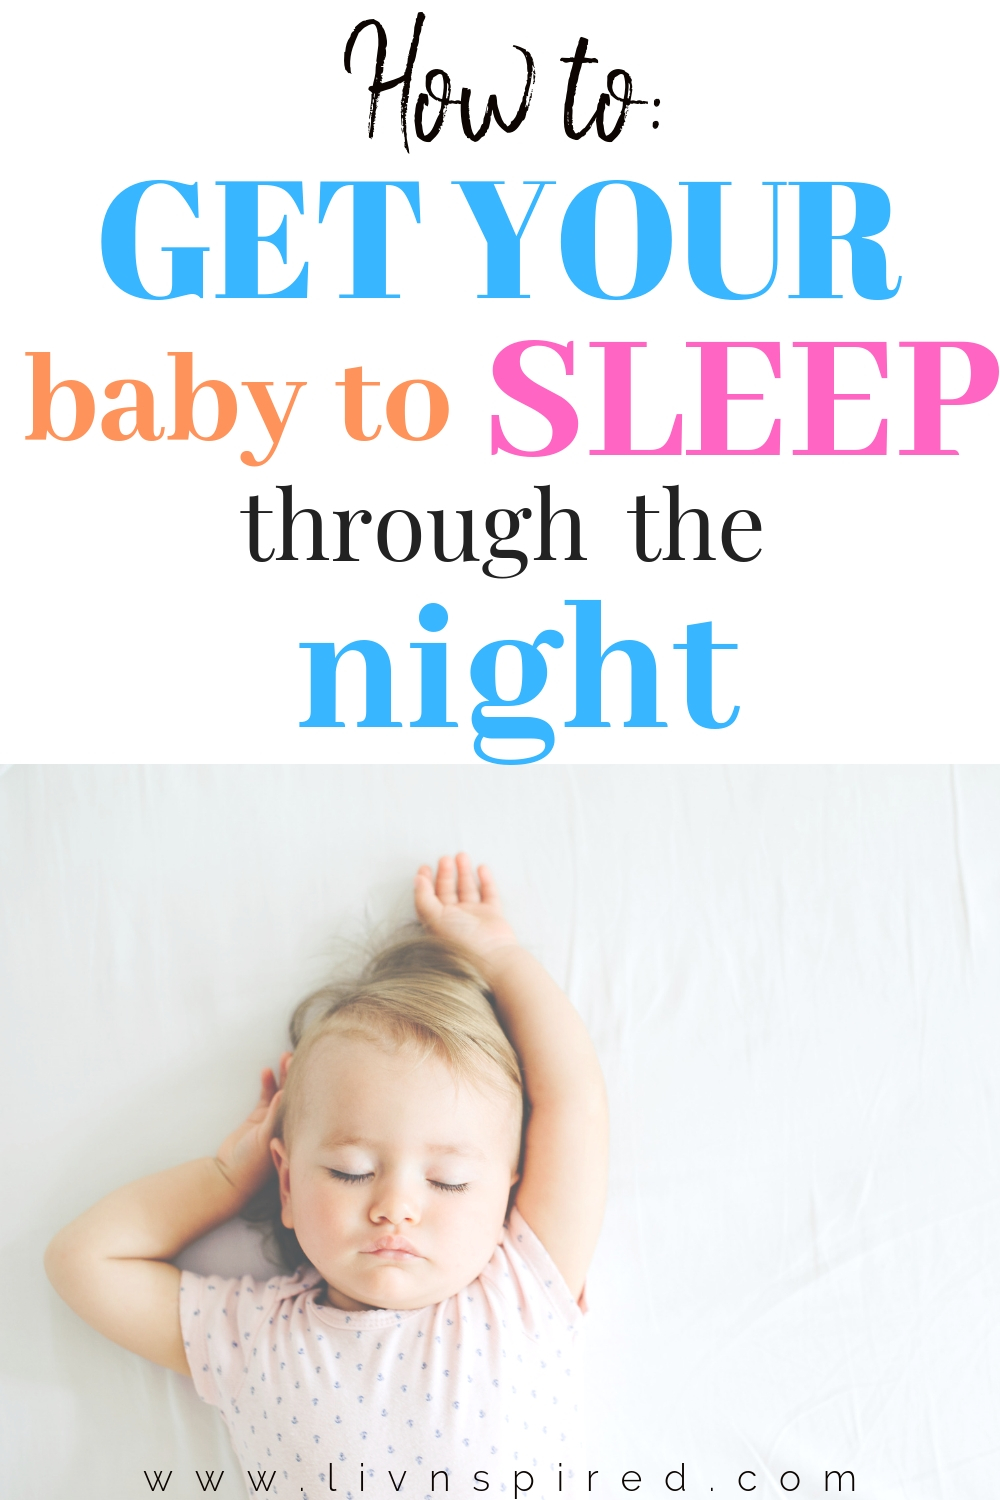 Sleep. Oh, how we take this for granted before we have kids. Is your baby still waking up several times a night?! Stop the sleep deprivation cycle TODAY with these tips on how to get your baby to sleep through the night! #newmom #sleeptraining #newborn